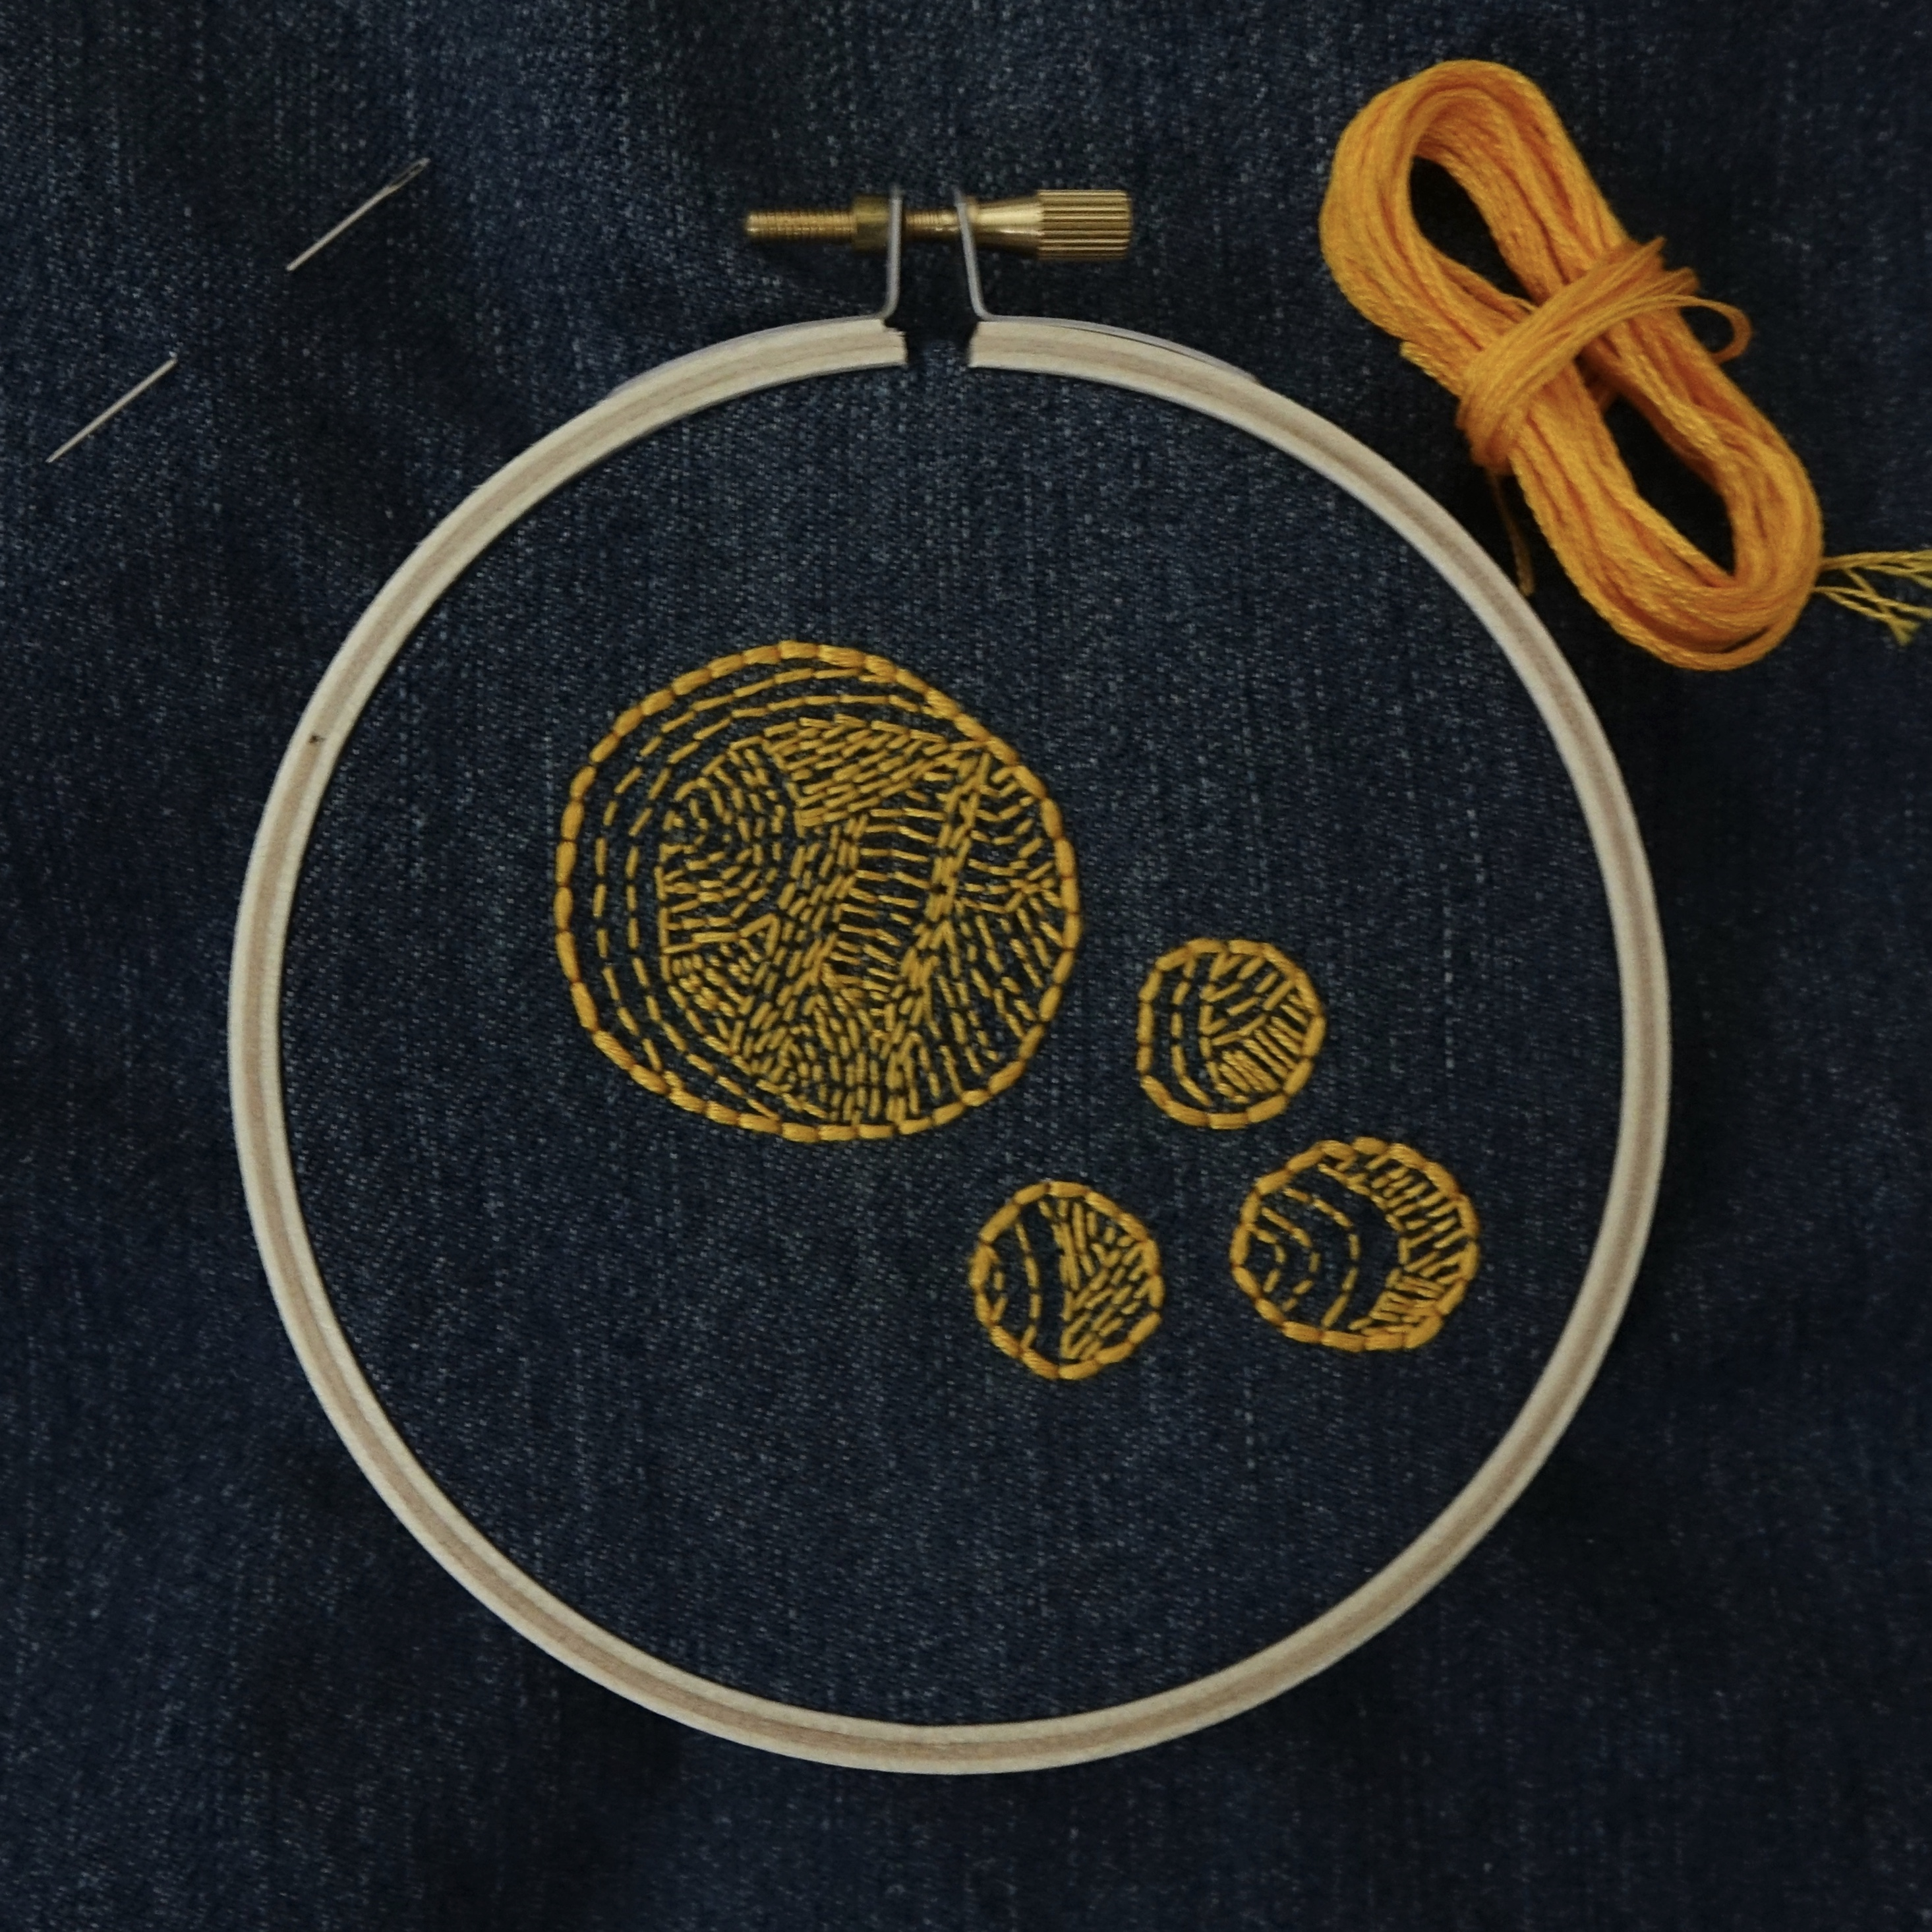 An embroidery hoop set with dark denim, one large and three small yellow-gold circles. There's a coil of floss in the top left corner and a needle threaded through the fabric on the right.